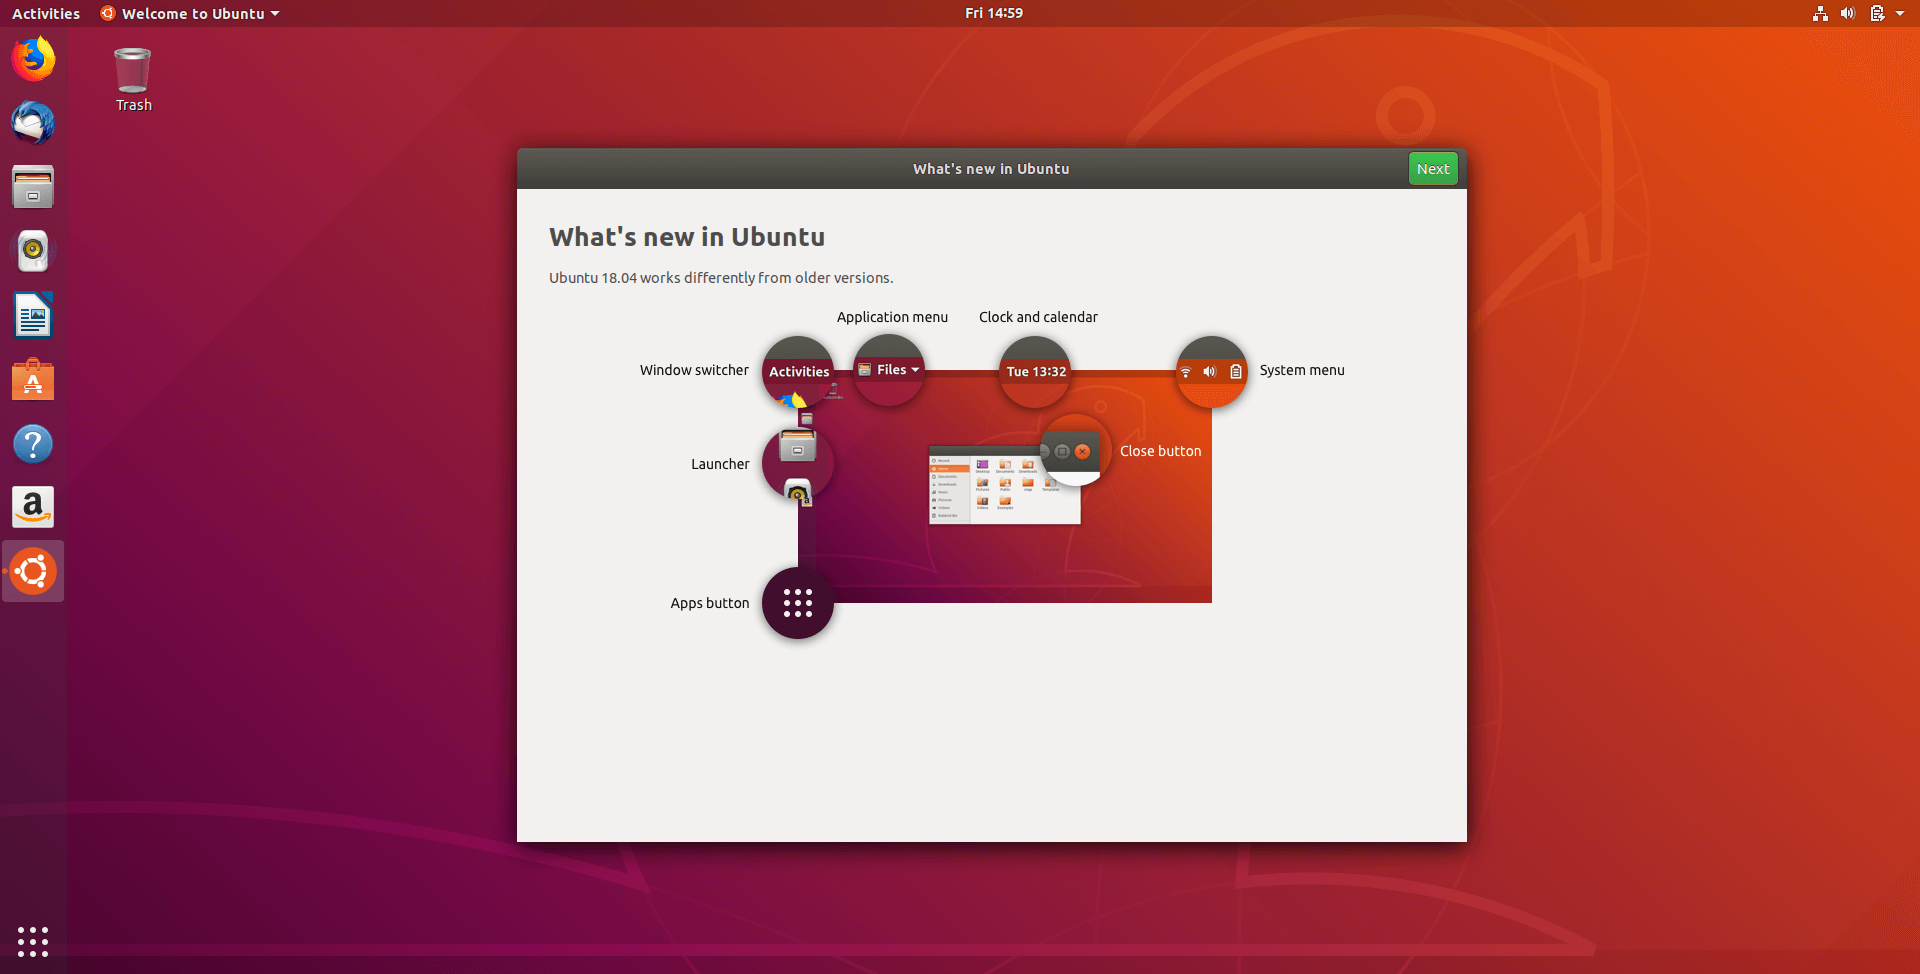 Ubuntu 18.04 New Features